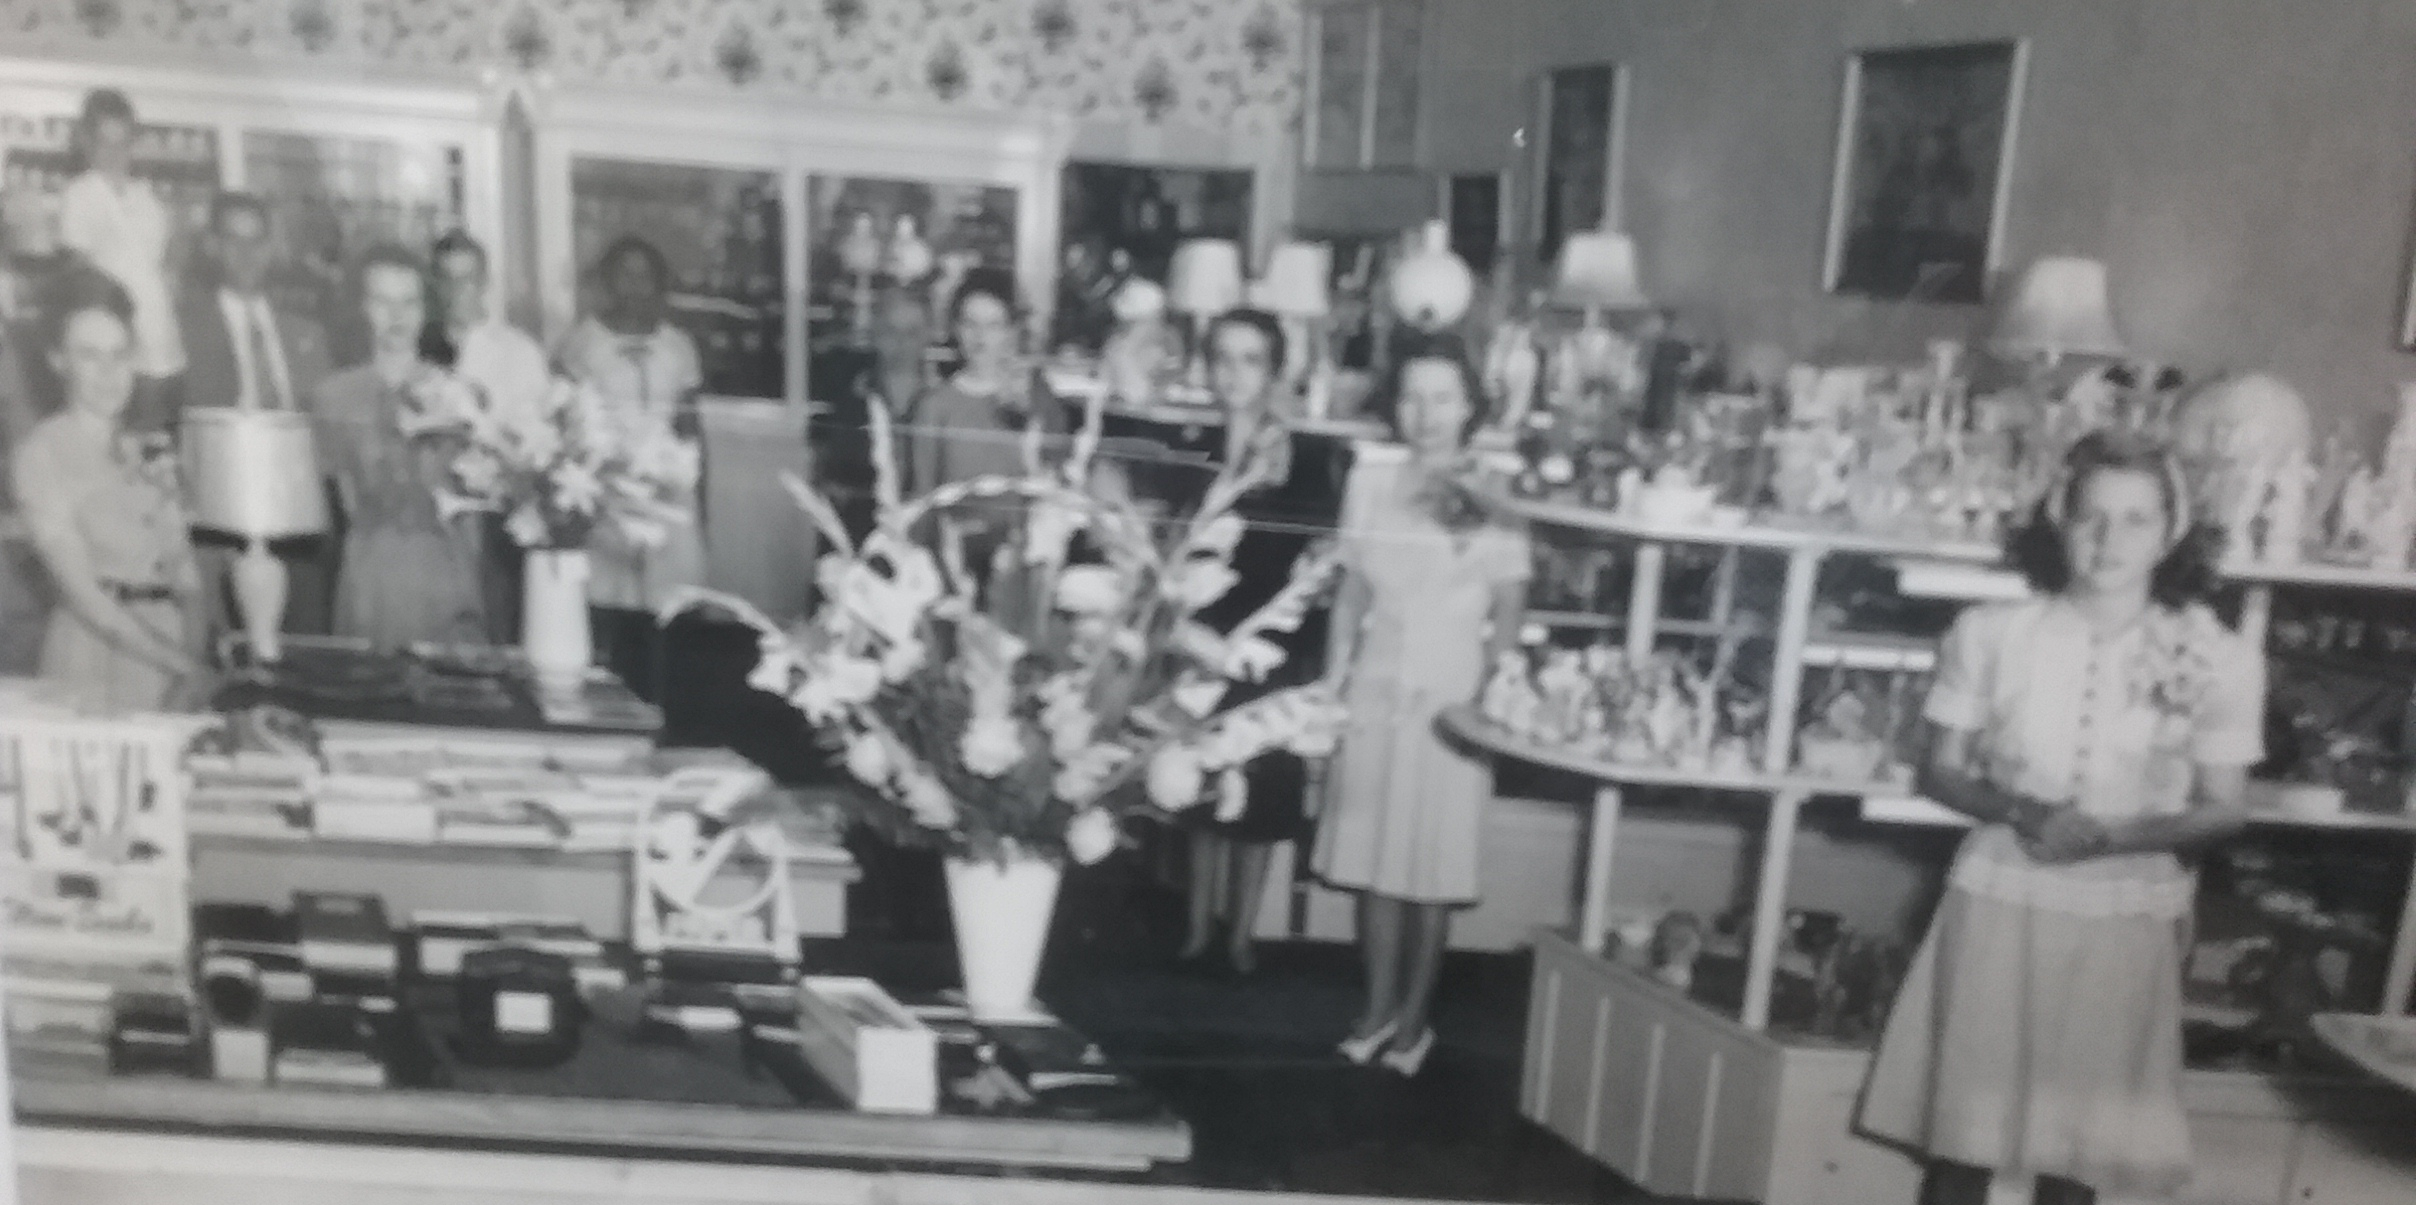 Couch's Gift Shop in 1948